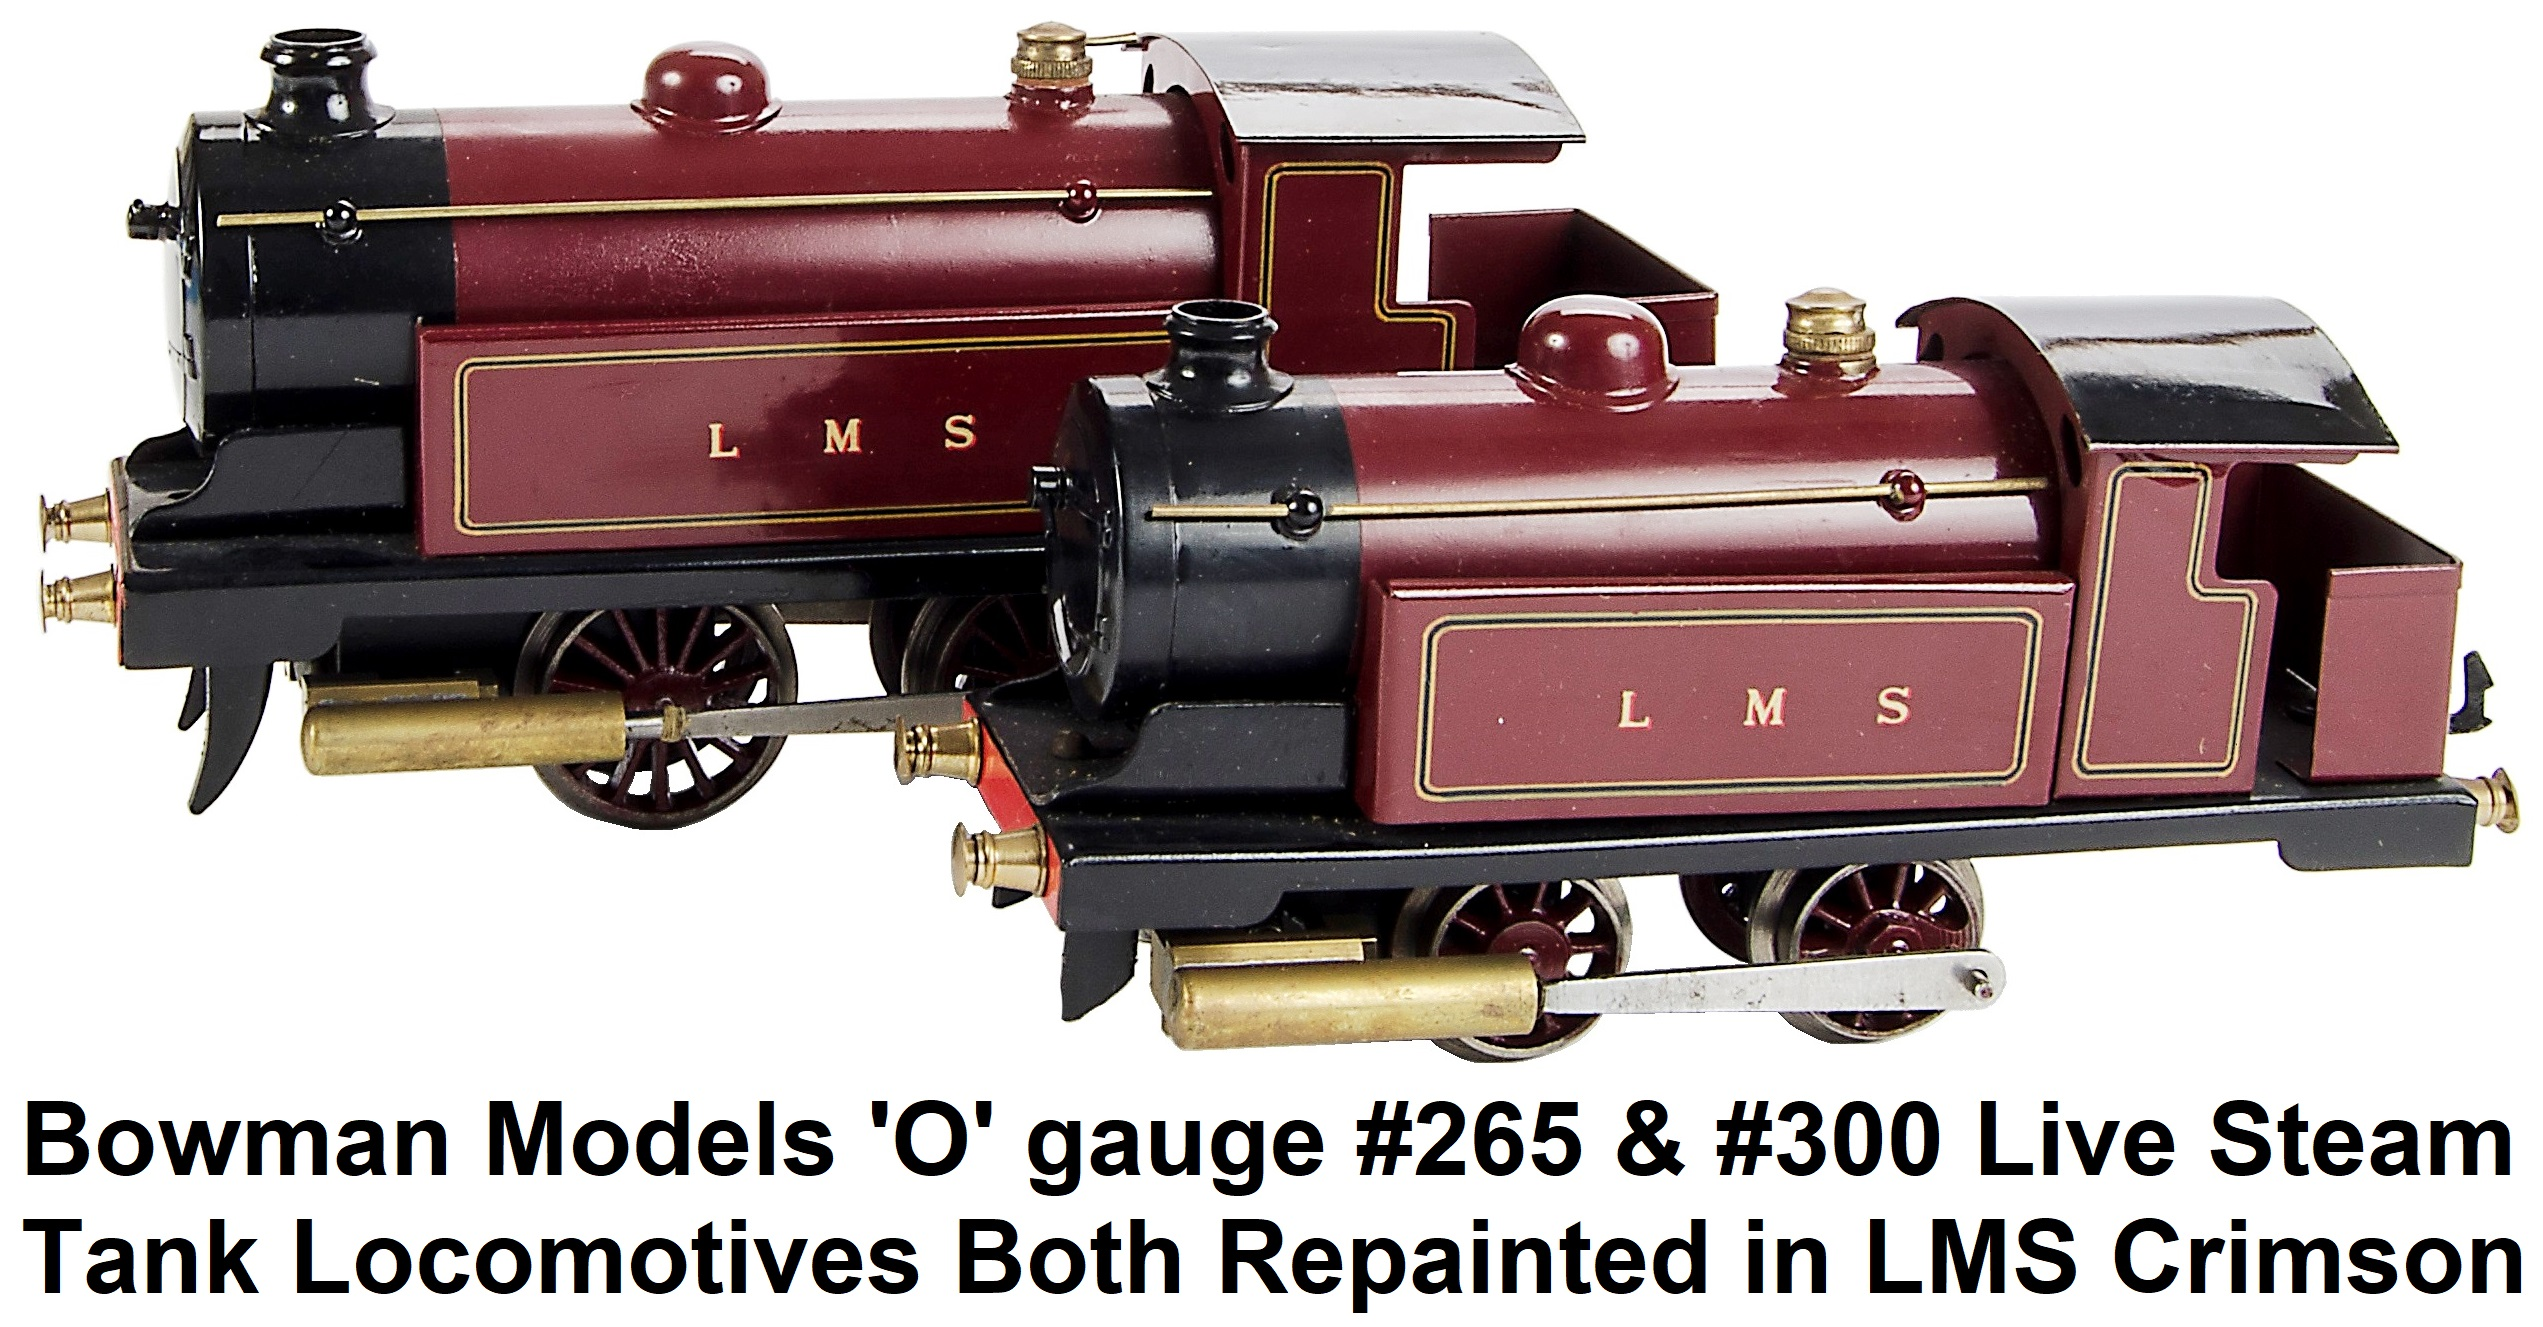 Bowman Models 'O' gauge #265 and #300 live steam tank locomotives repainted in LMS Crimson